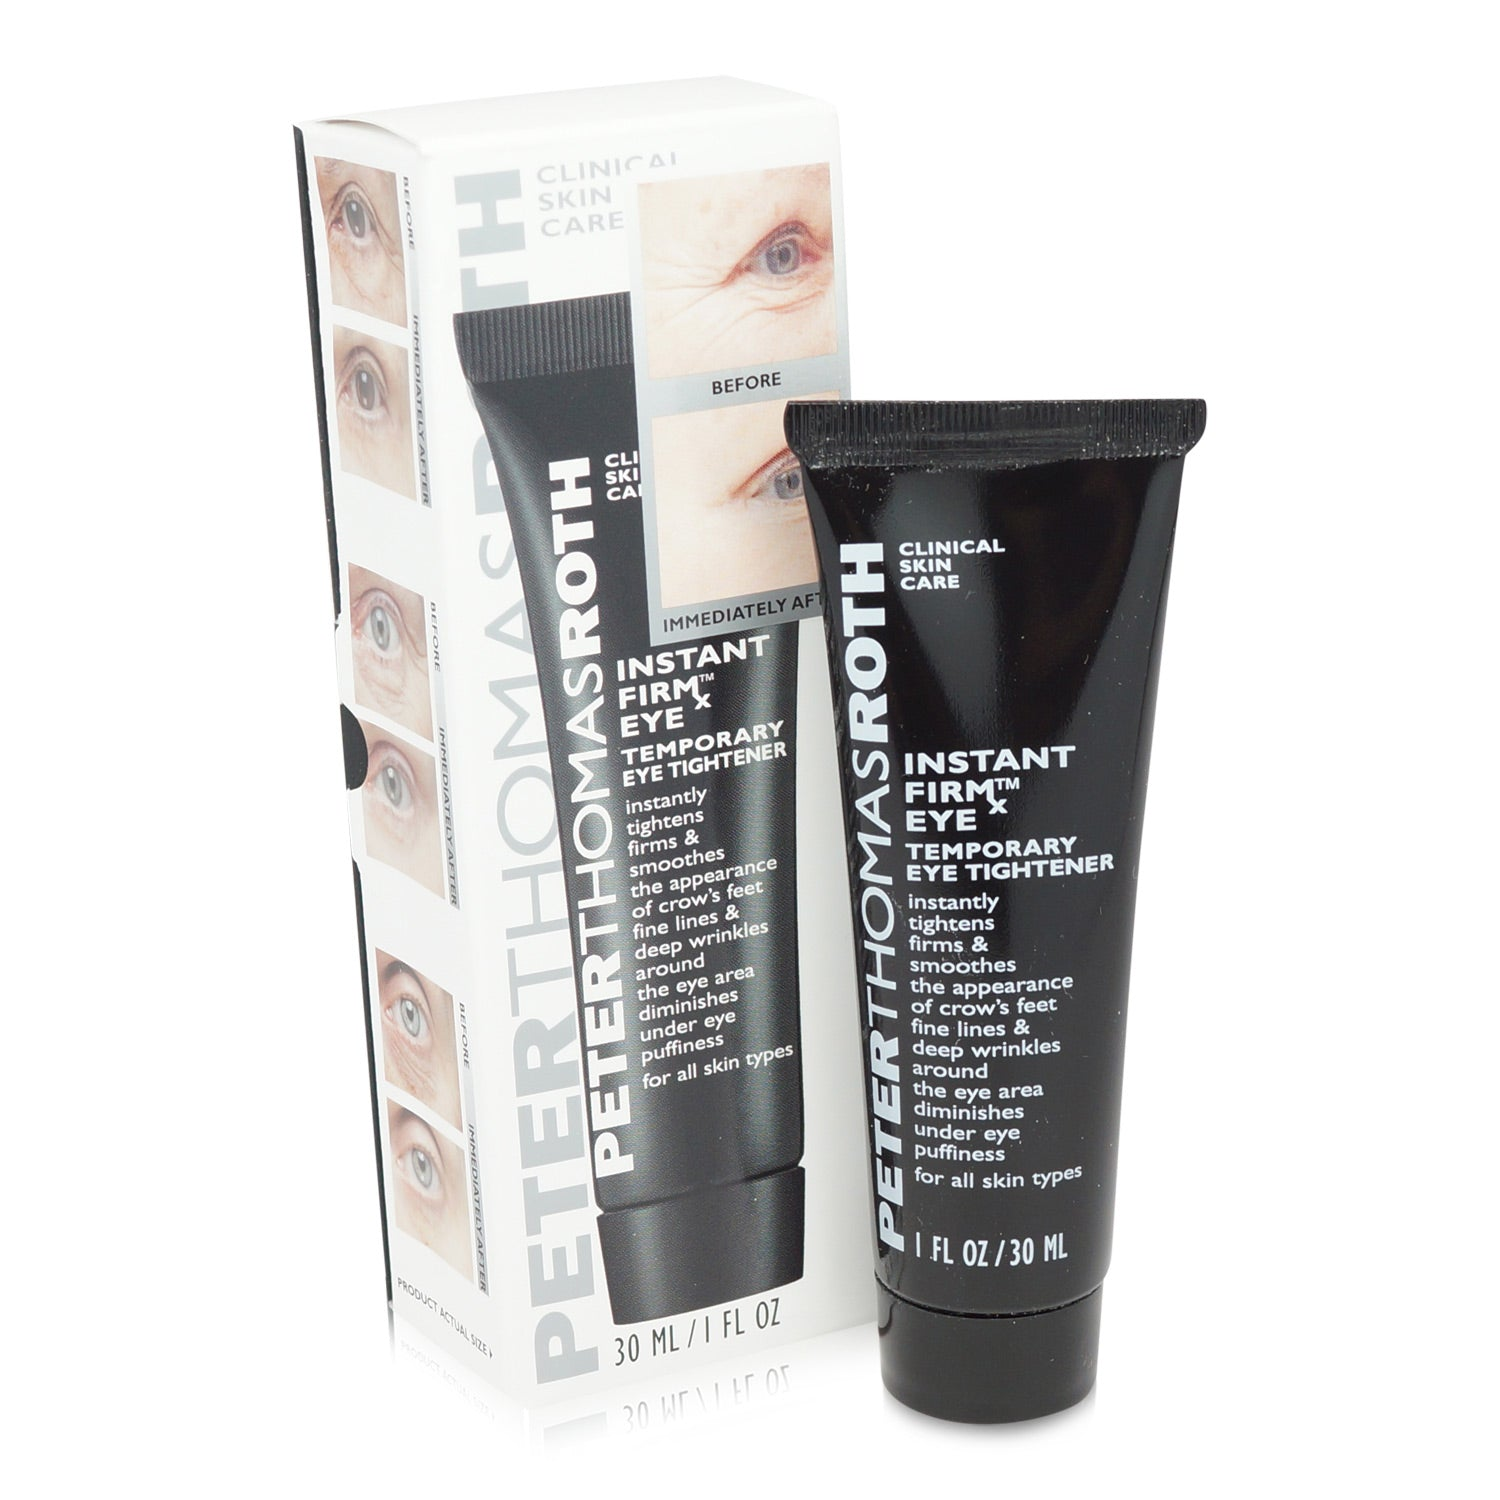 PETER THOMAS ROTH ~ INSTANT FIRMX TEMPORARY EYE TIGHTENER ~ 1 FL OZ  *2018*